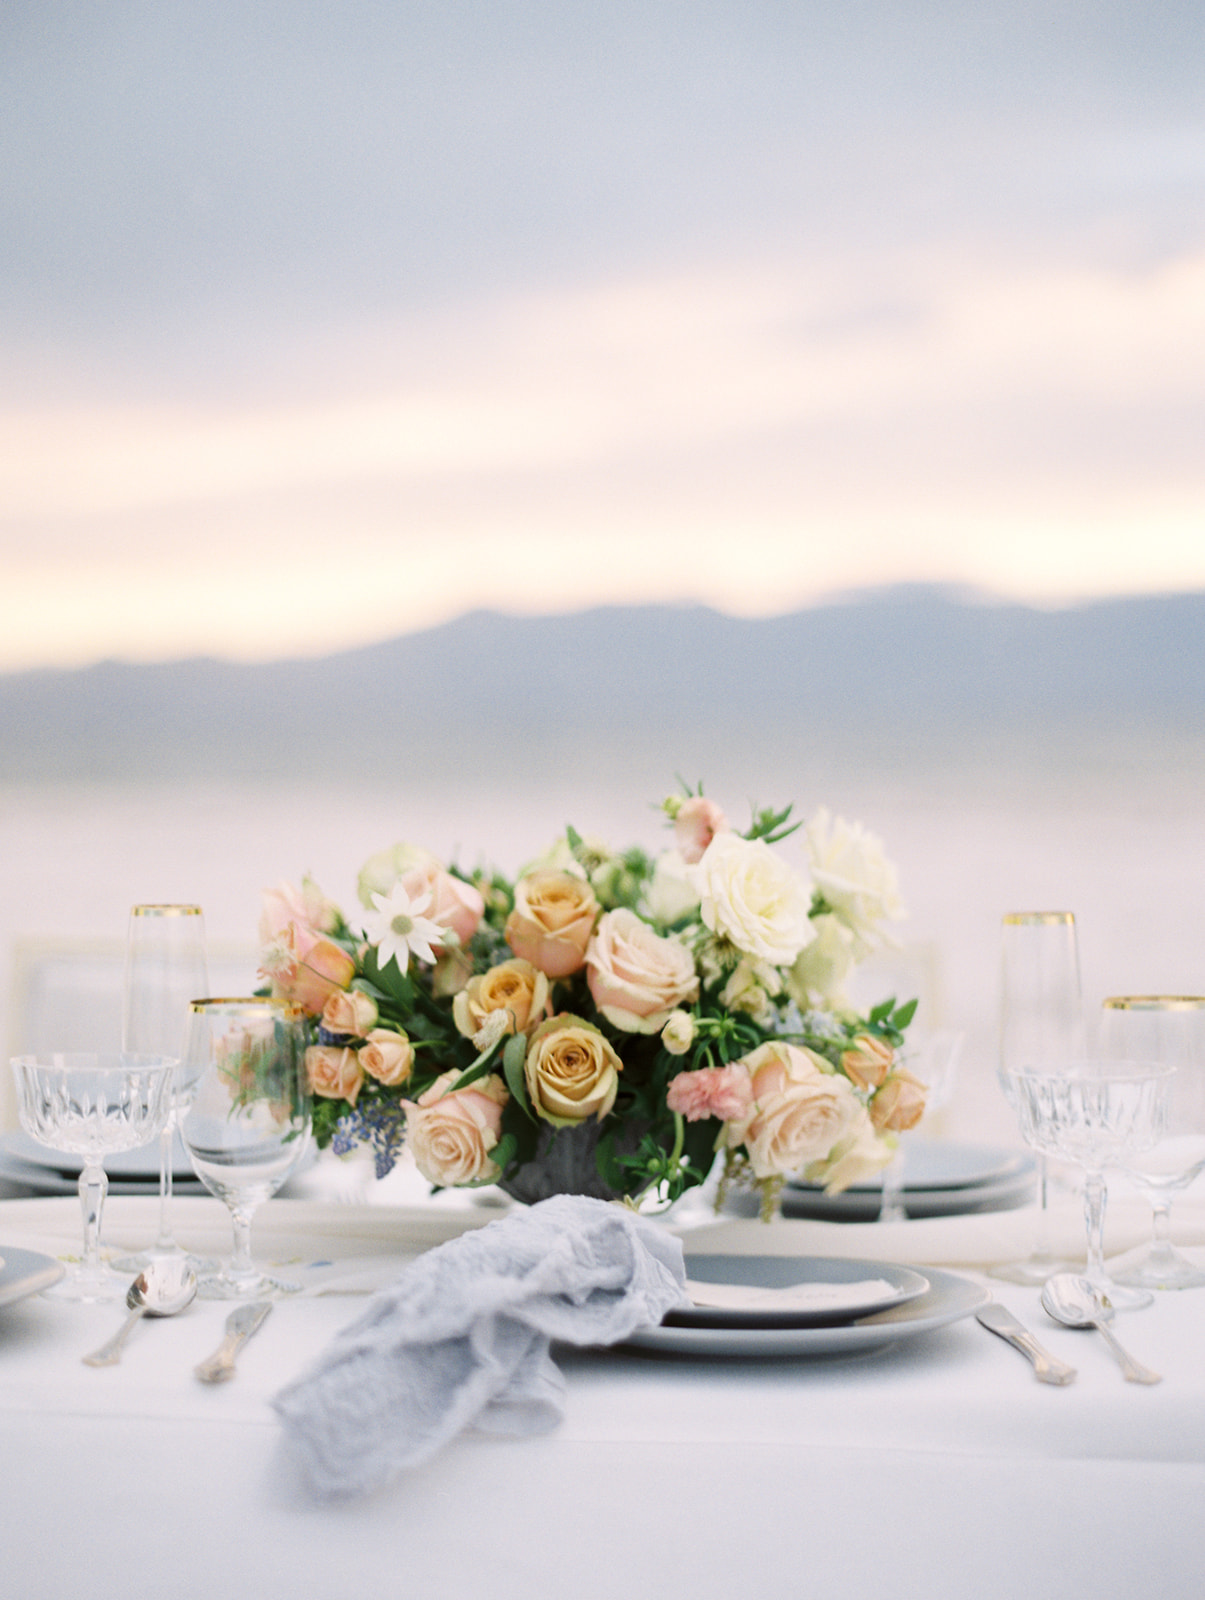 Luxury centerpieces by Finding Flora